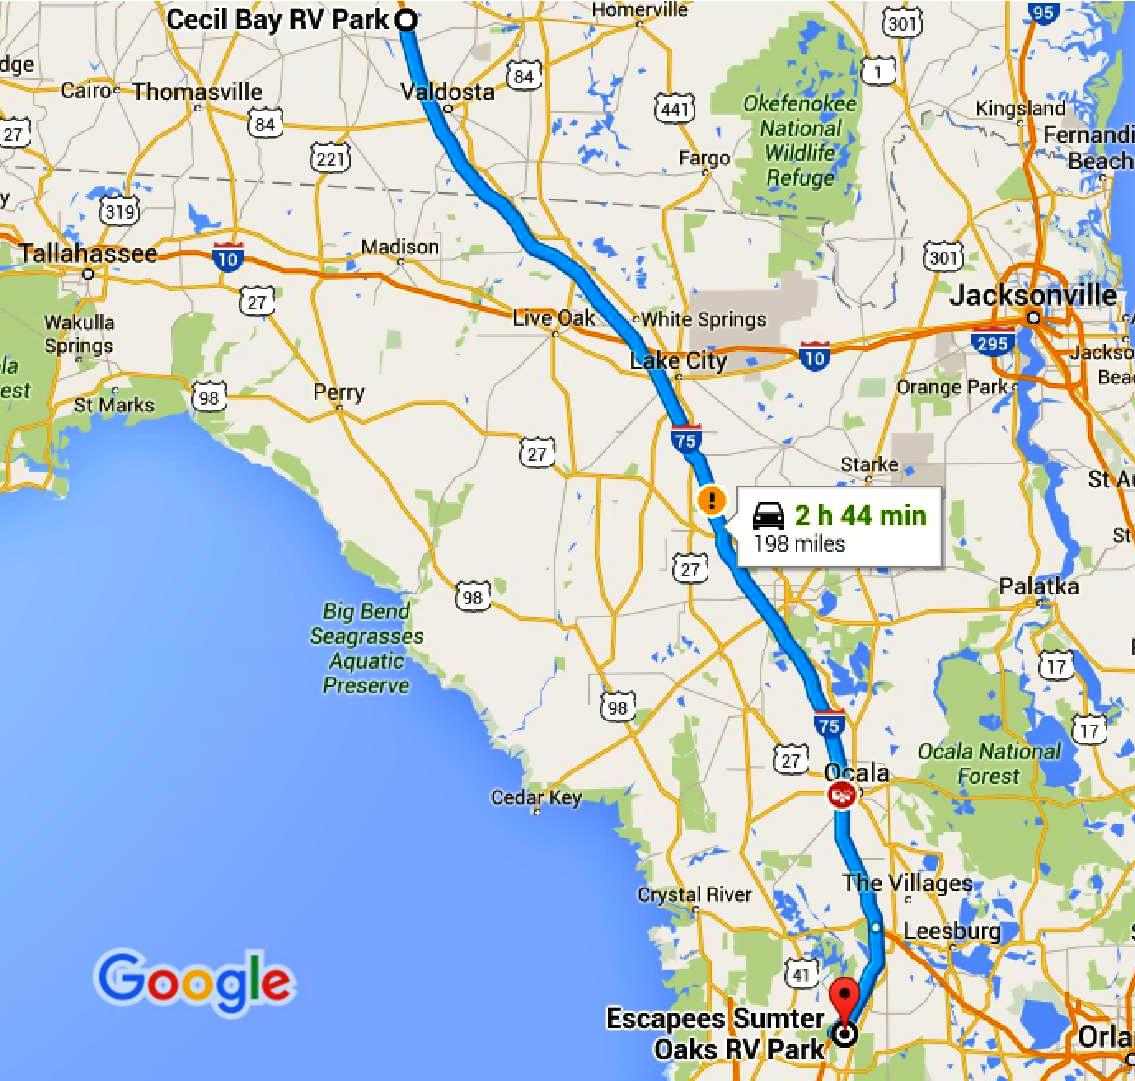 Sts Hop 11 Cecil Ga To Bushnell Fl 171 Our Wander Years